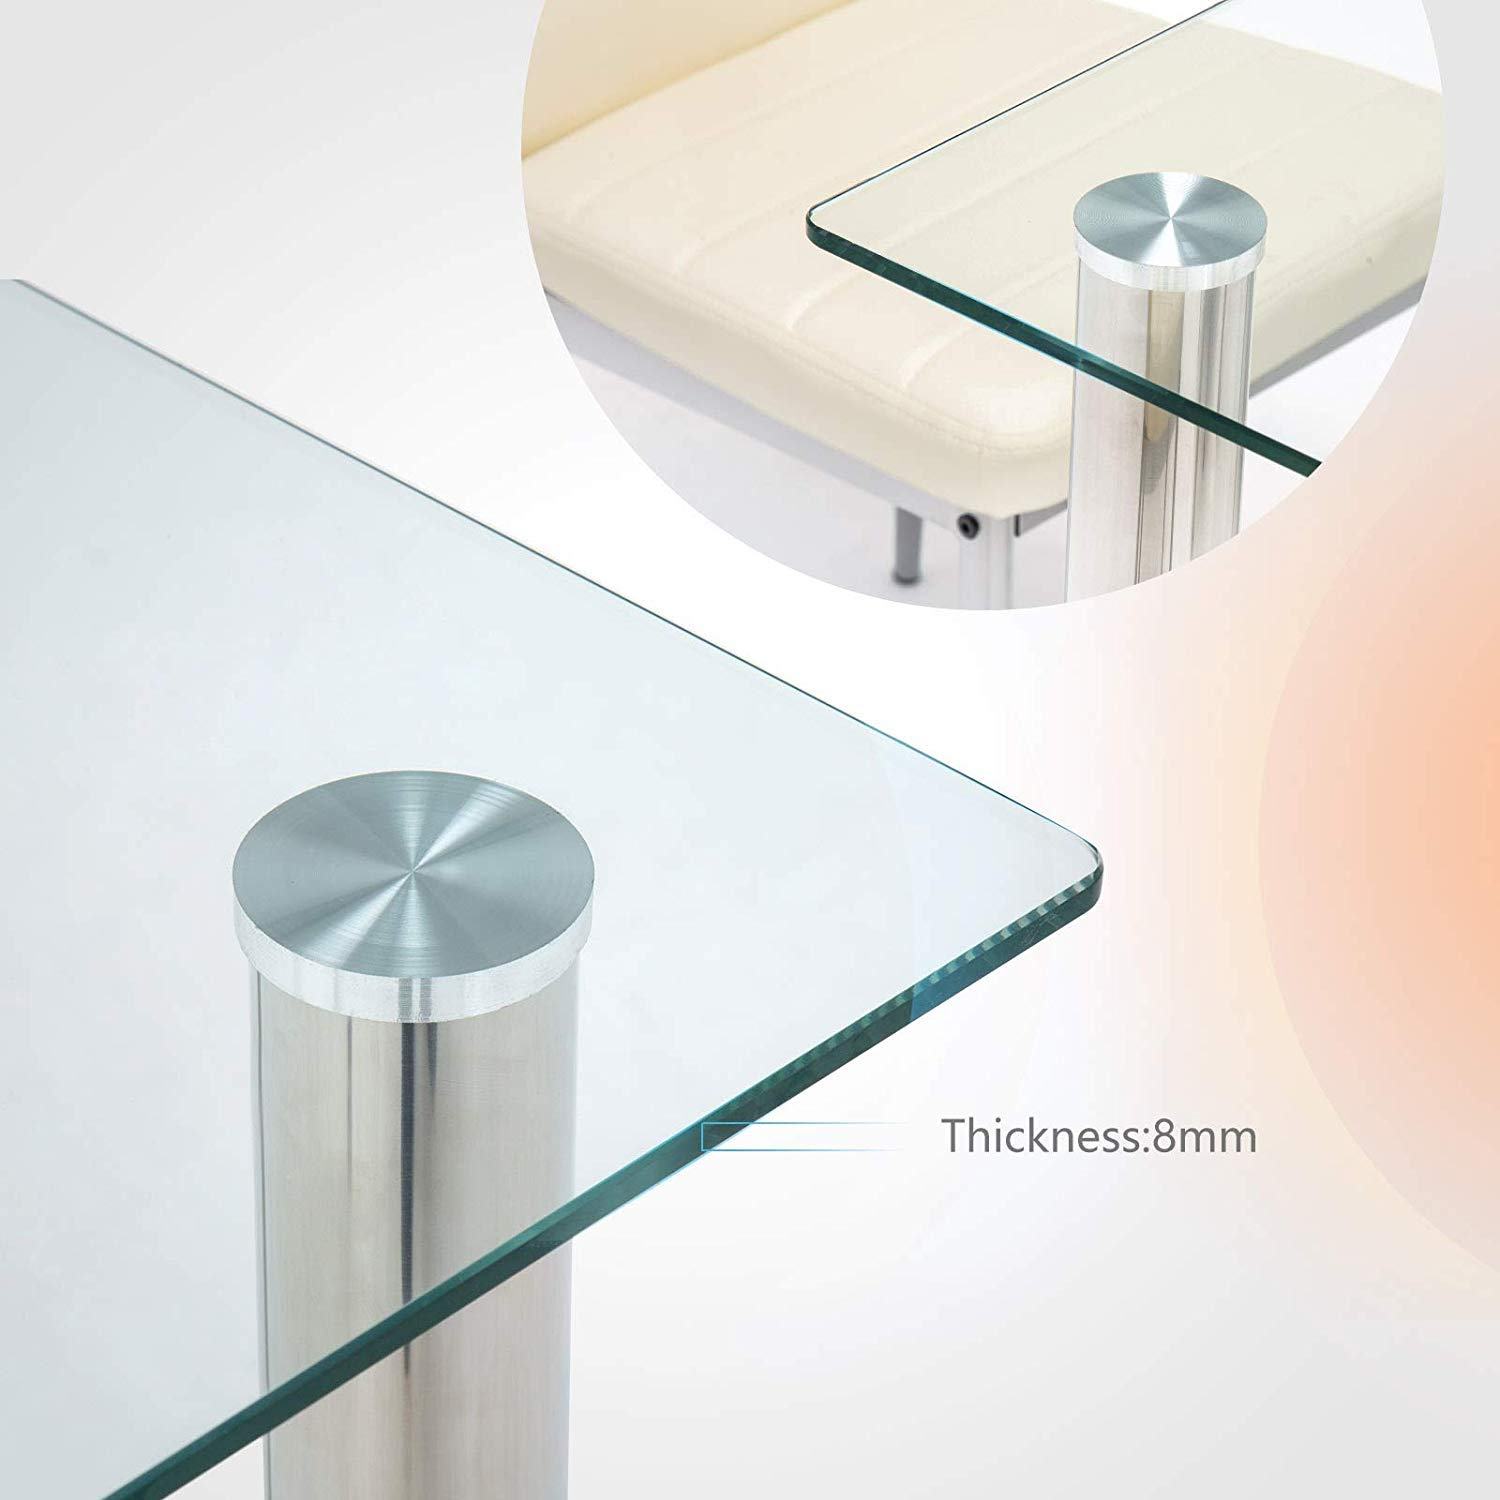 Mecor Dining Table Modern Minimallist Glass Kitchen Table Rectangular Transparent Metal Legs 47IN for 4/6 Persons,Clear by Mecor (Image #4)